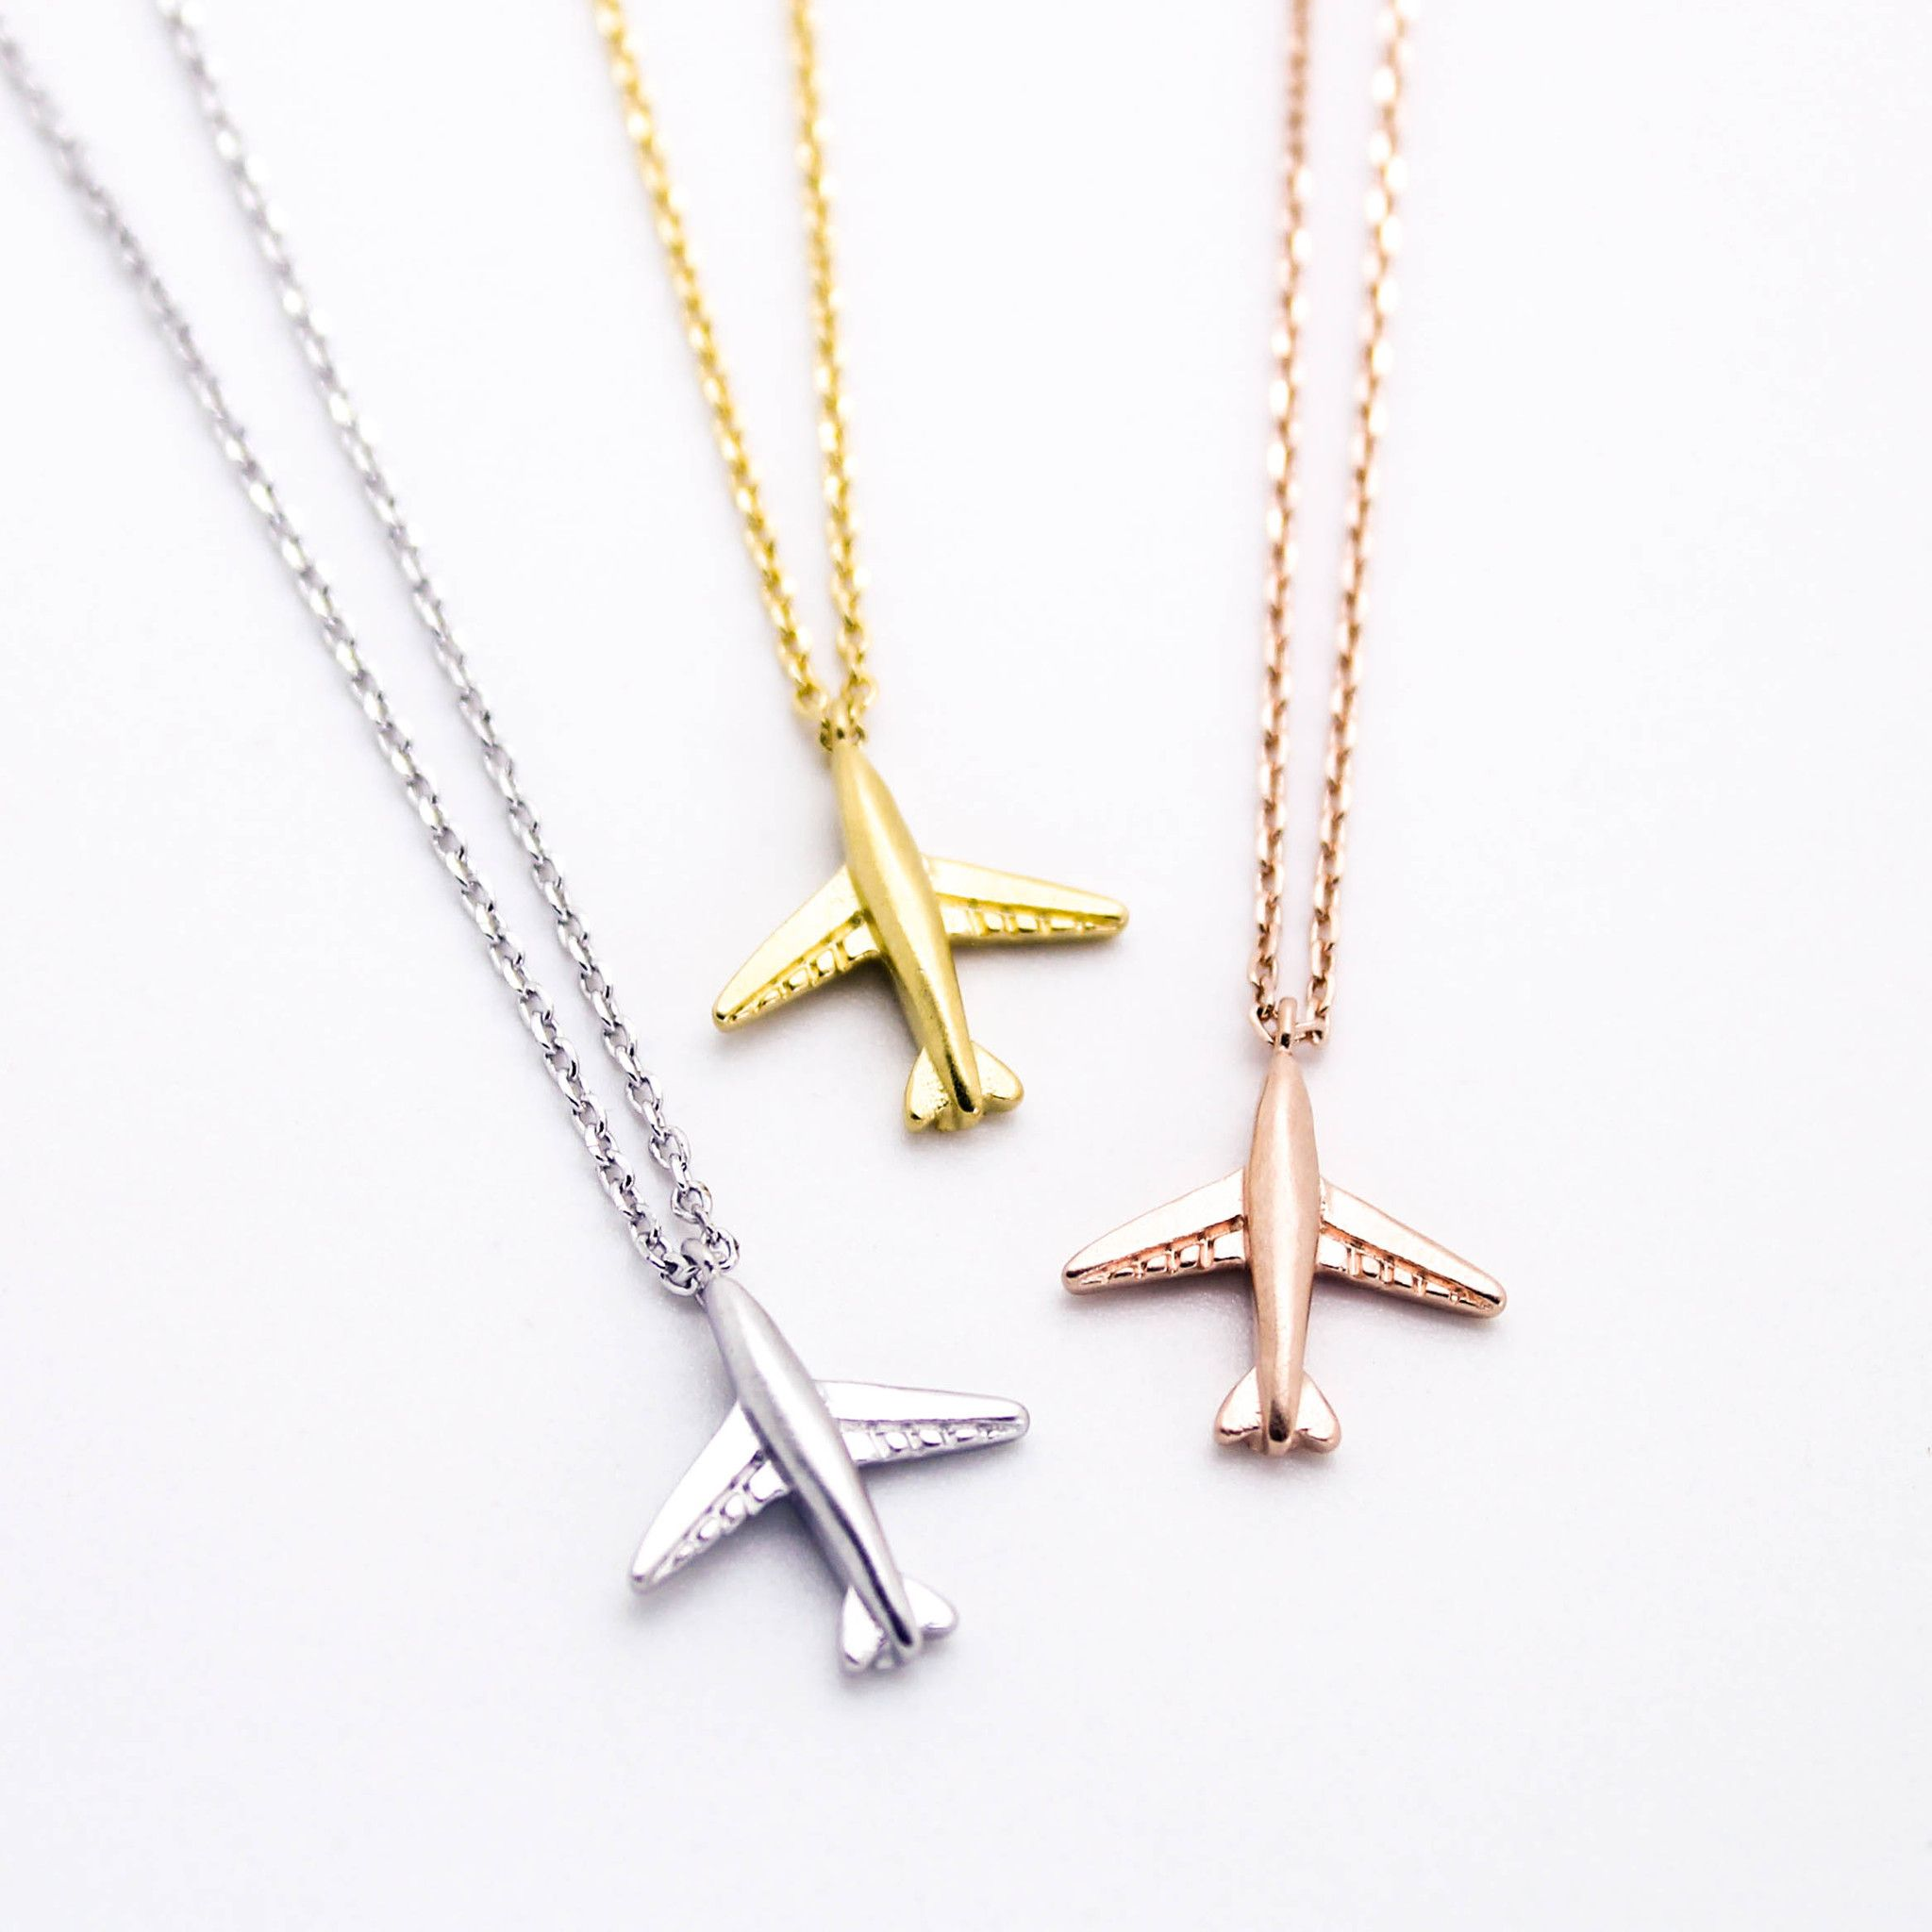 Airplane necklace Pendants Airplanes and Chain lengths